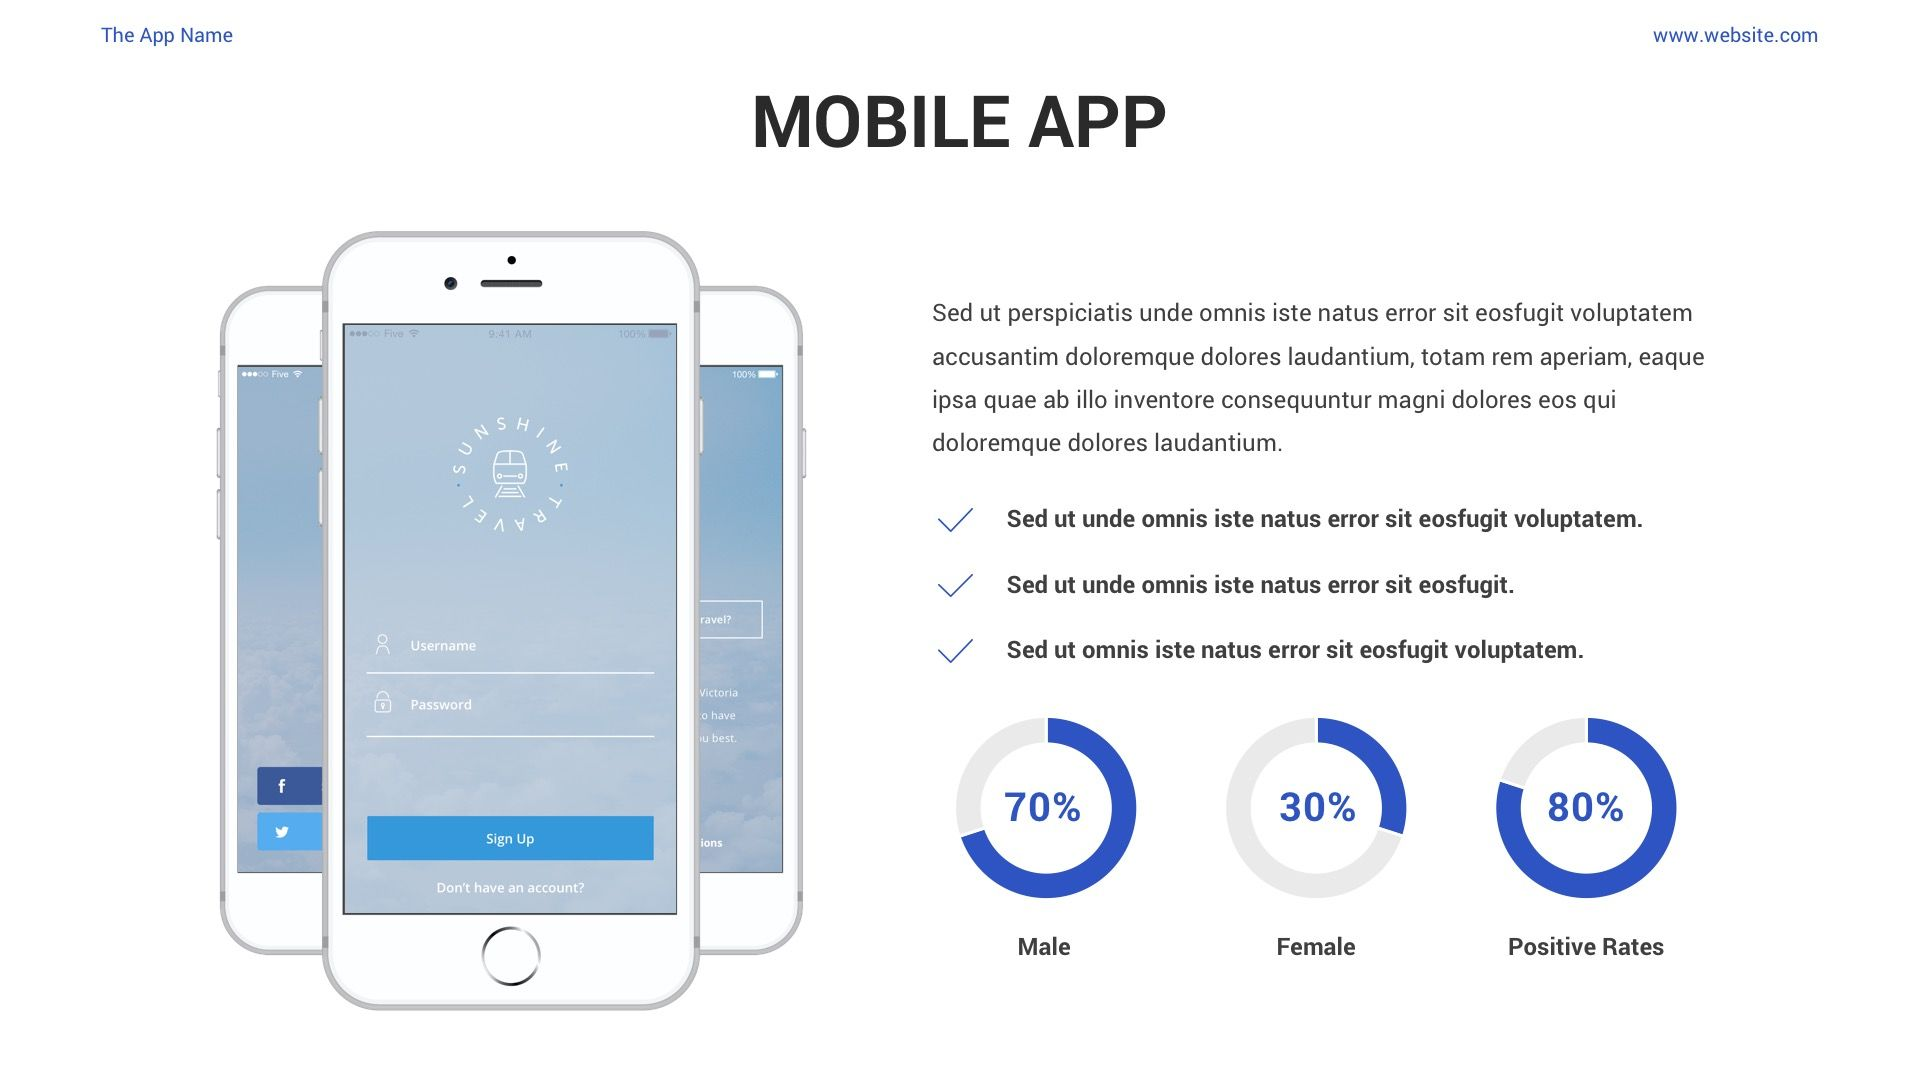 Mobile App Showcase PPT Pitch Deck in 2020 Mobile app